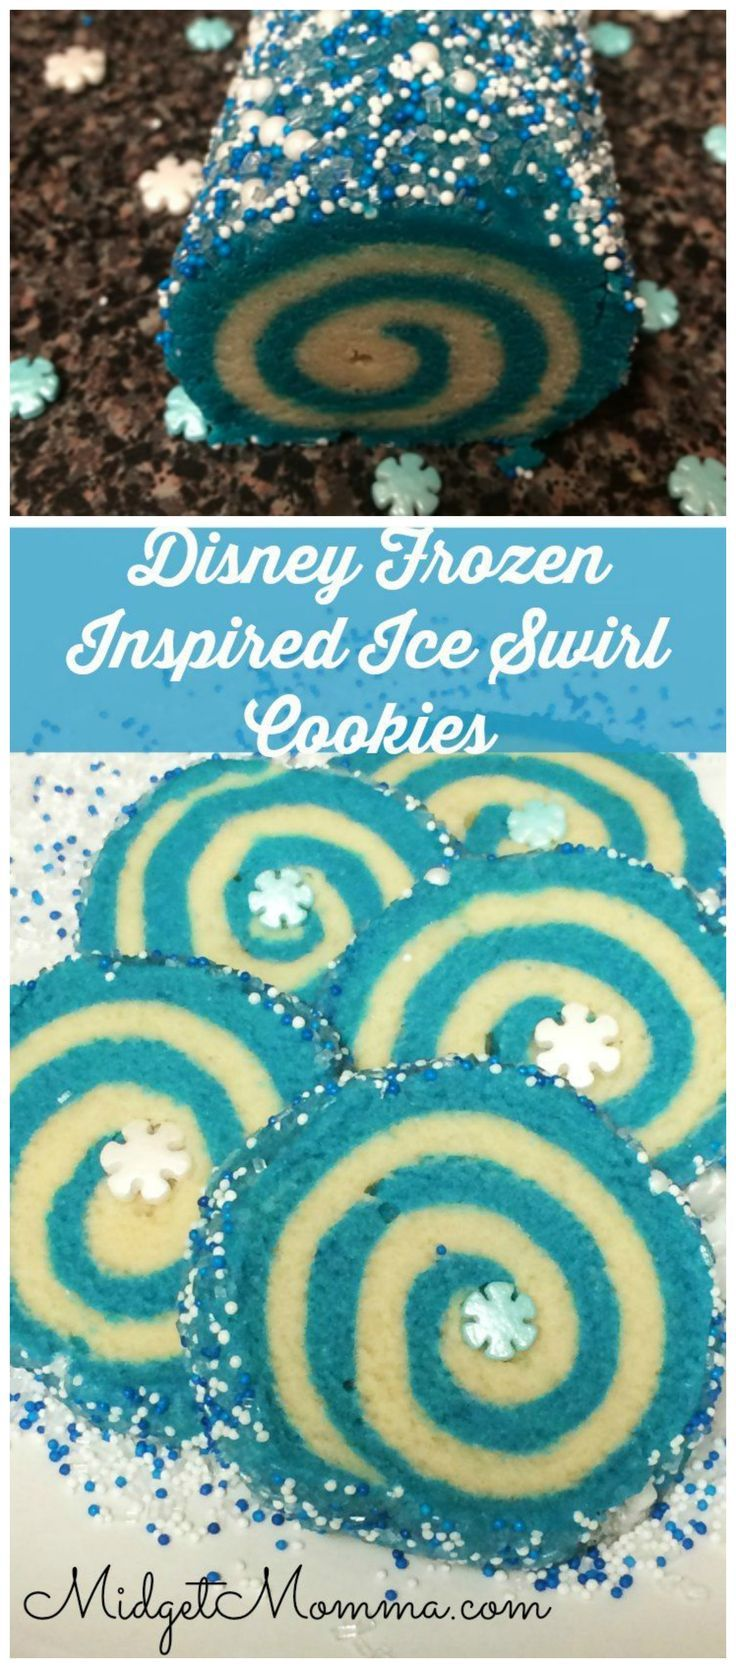 Frozen Party Ideas - Frozen Swirl Cookies